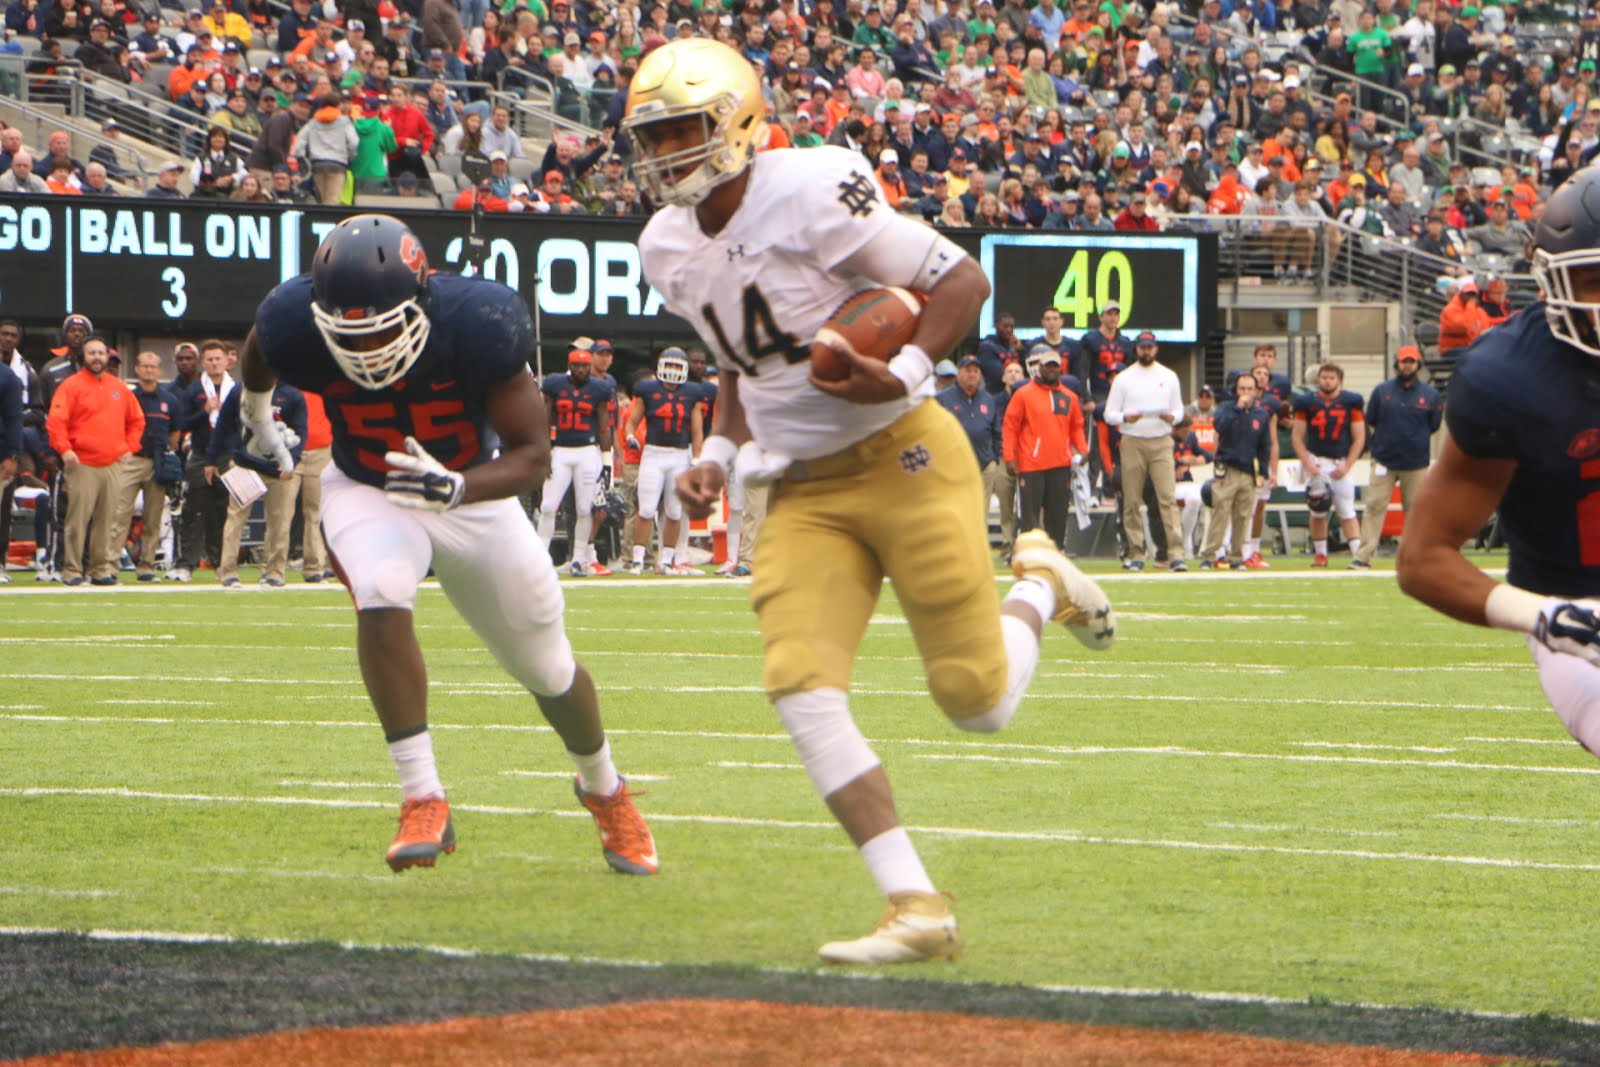 ND Uses Big Plays to Down Orange, 50-33